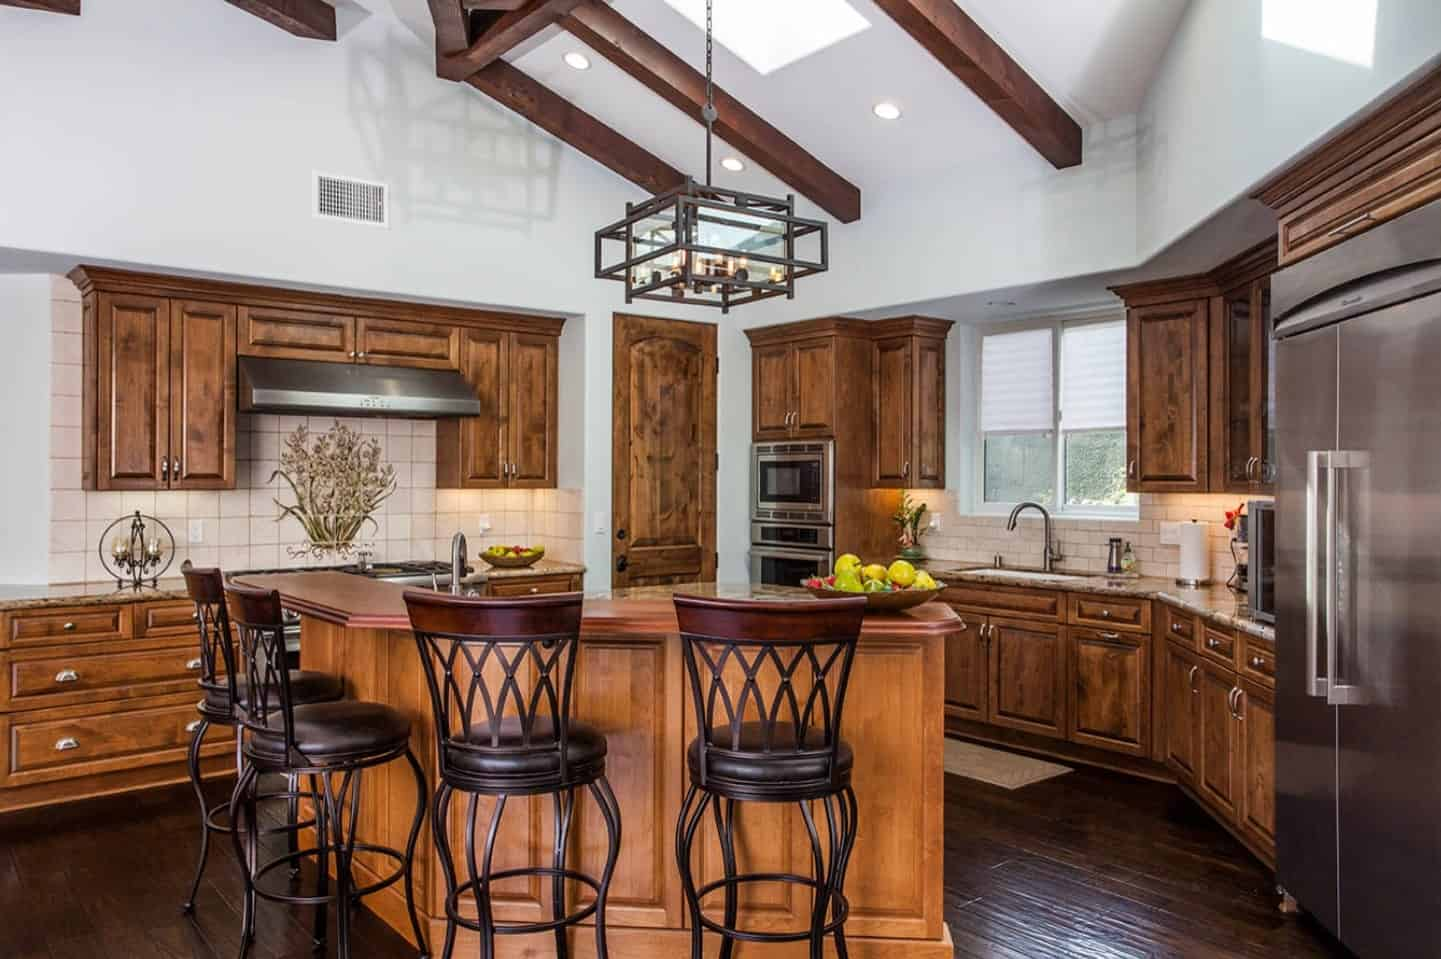 The black wrought iron stools with matching black leather seat cushions stand out against the wooden kitchen and matches with the lantern-like pendant light. This hangs from a shed ceiling with exposed wooden beams that match the hardwood flooring.